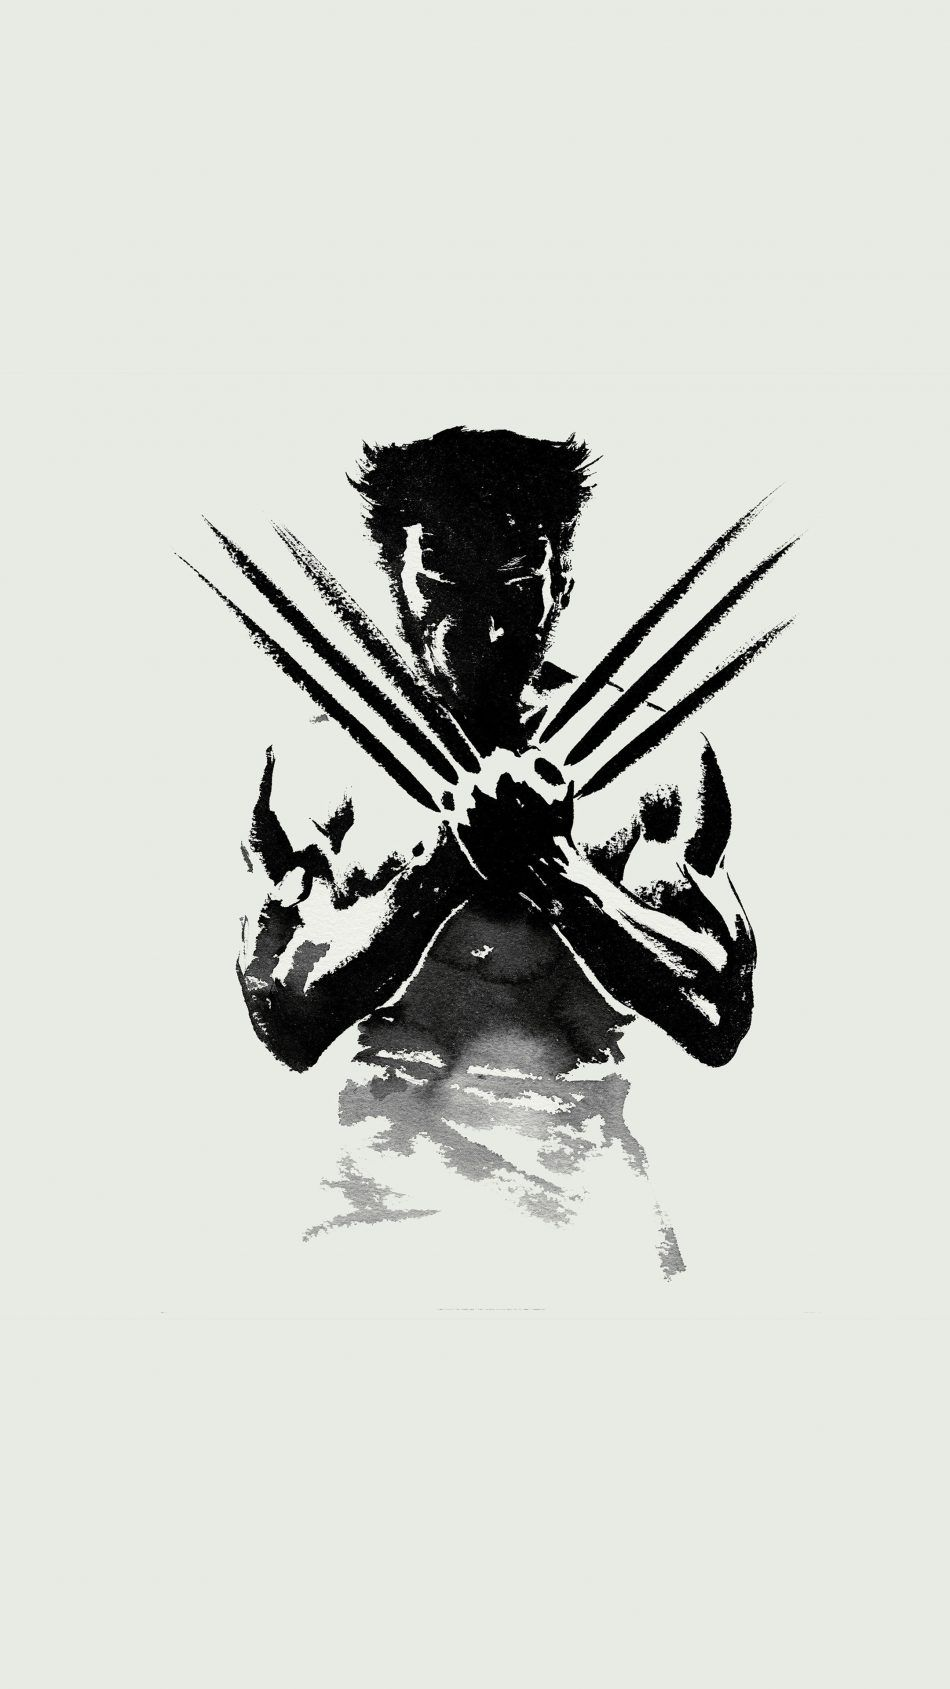 Wolverine Fan Artwork 4k Ultra Hd Mobile Wallpaper Wolverine Artwork Wolverine Art Wolverine Marvel Art